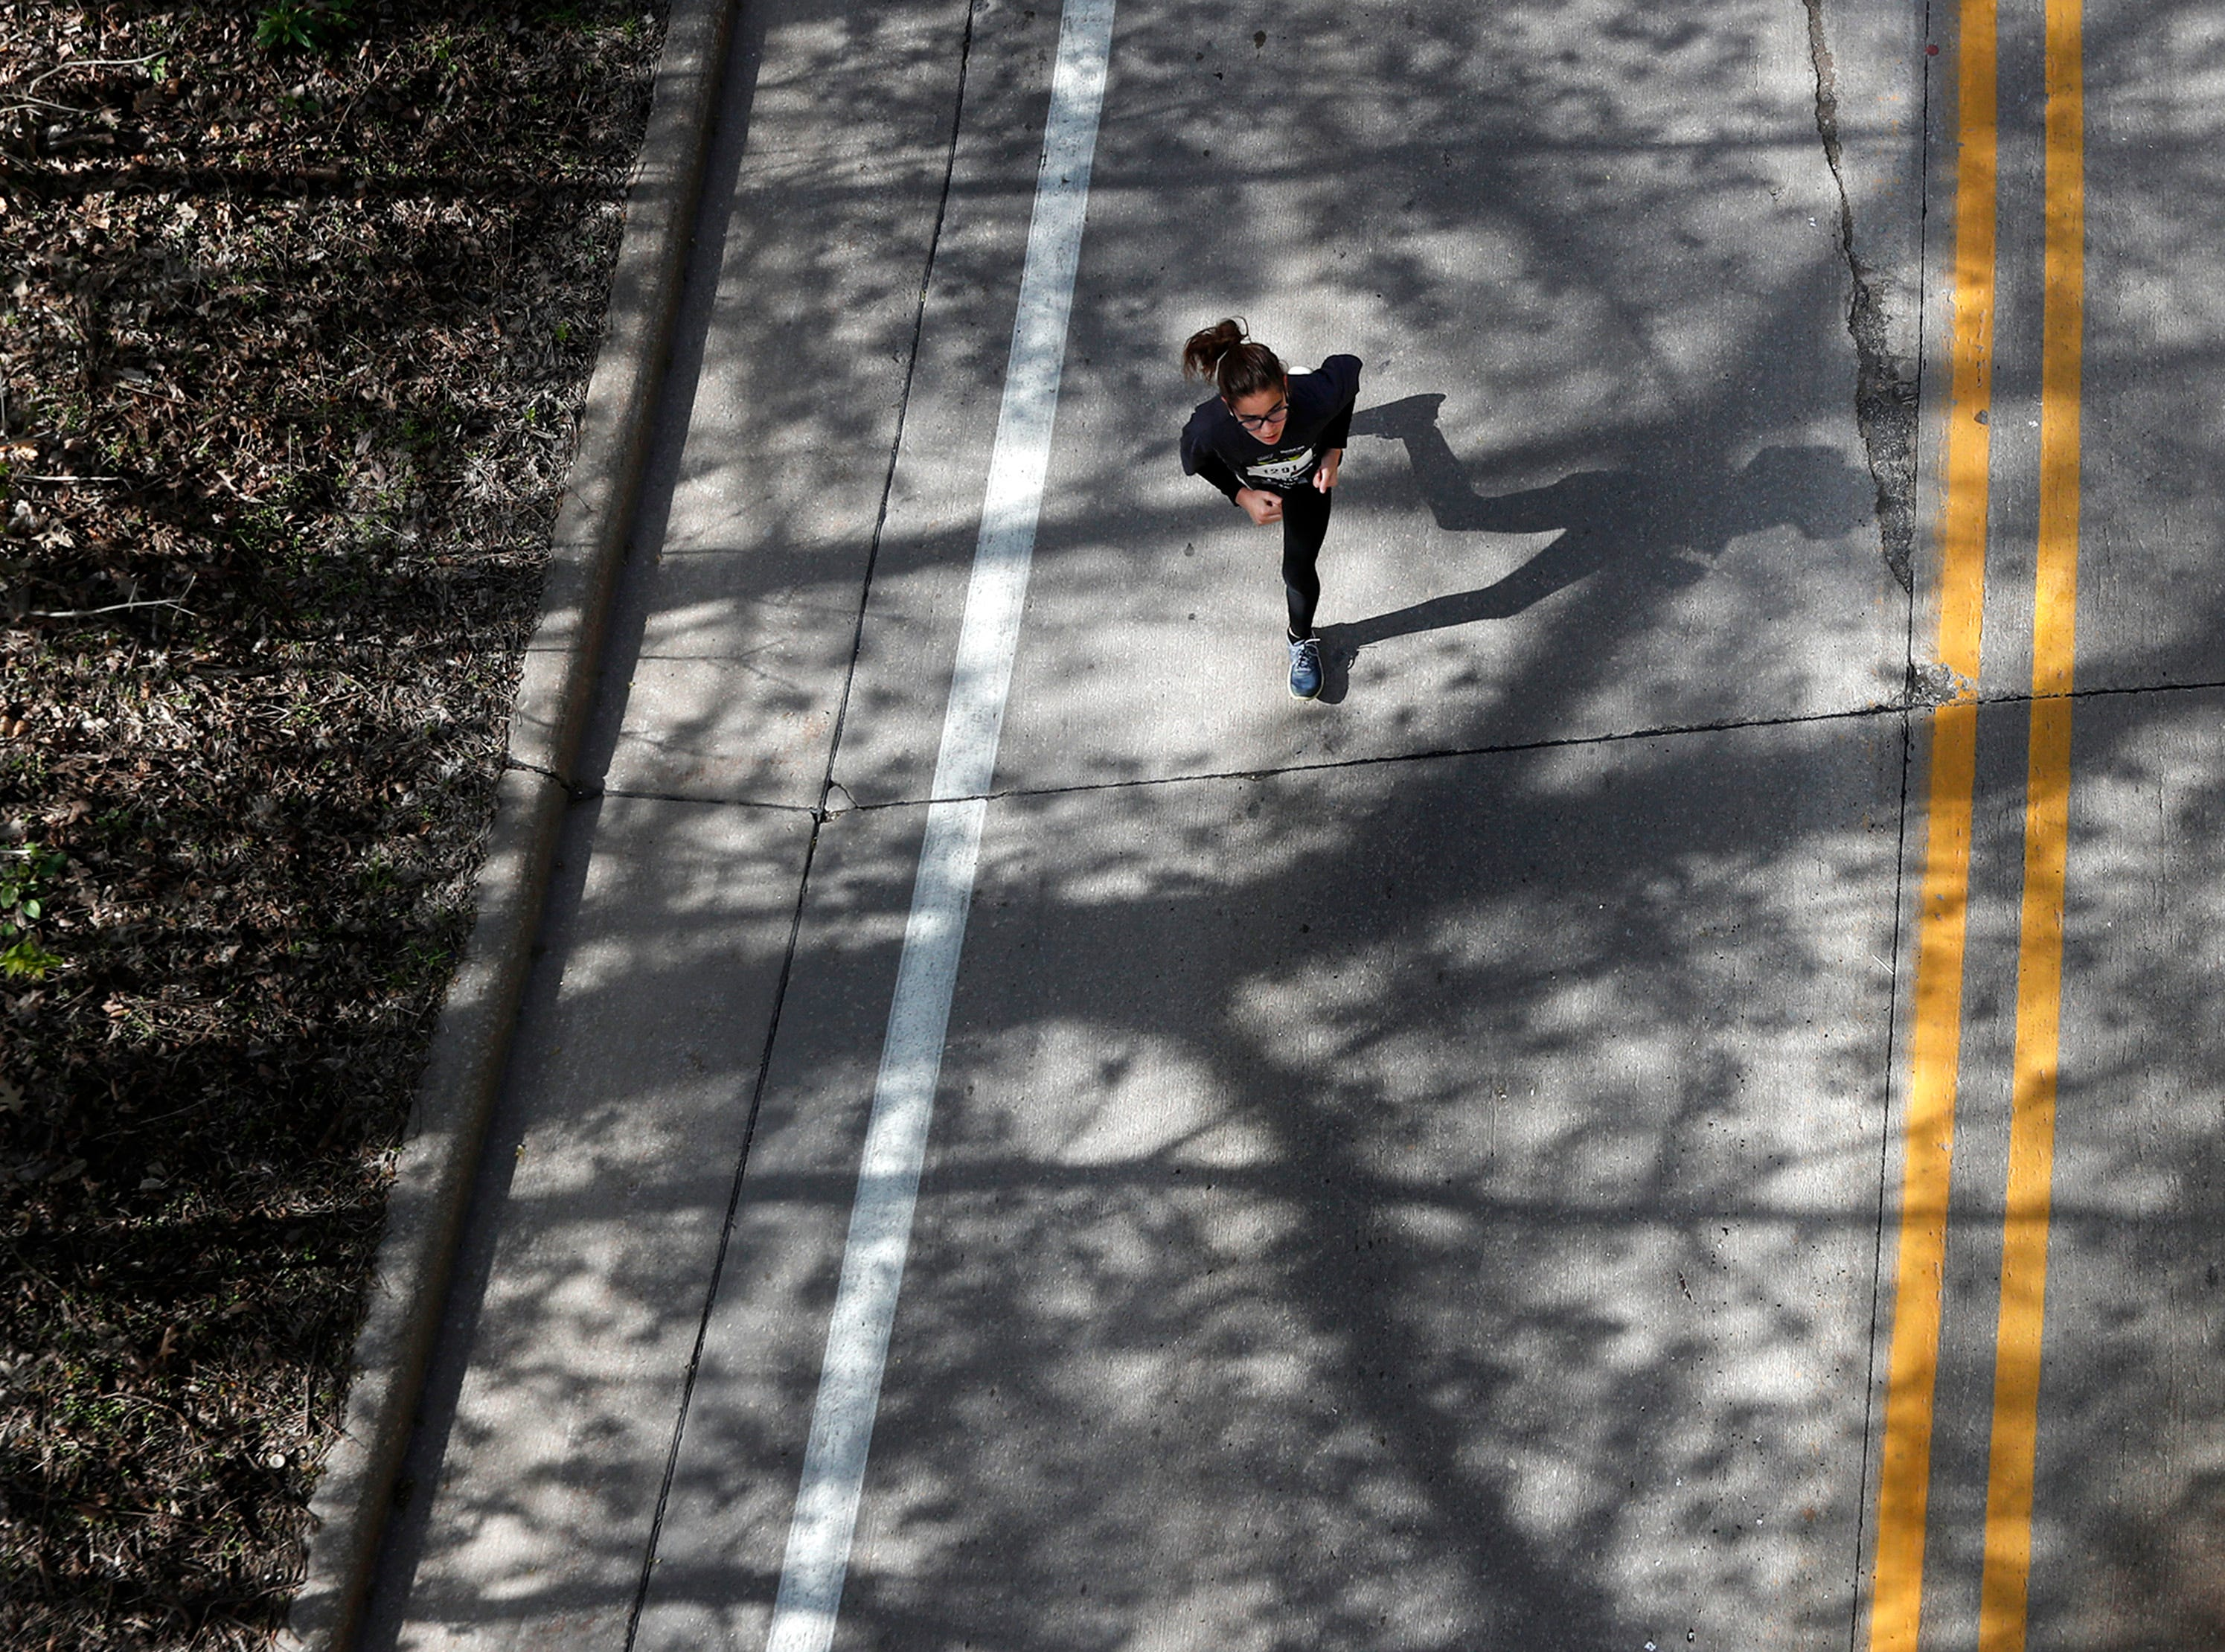 """Roxane Keuler makes her way up """"The Hill of Hope, on the way to the finish line of the Sole Burner 5K Walk-Run Saturday, May 11, 2019, in Appleton, Wis. Danny Damiani/USA TODAY NETWORK-Wisconsin"""